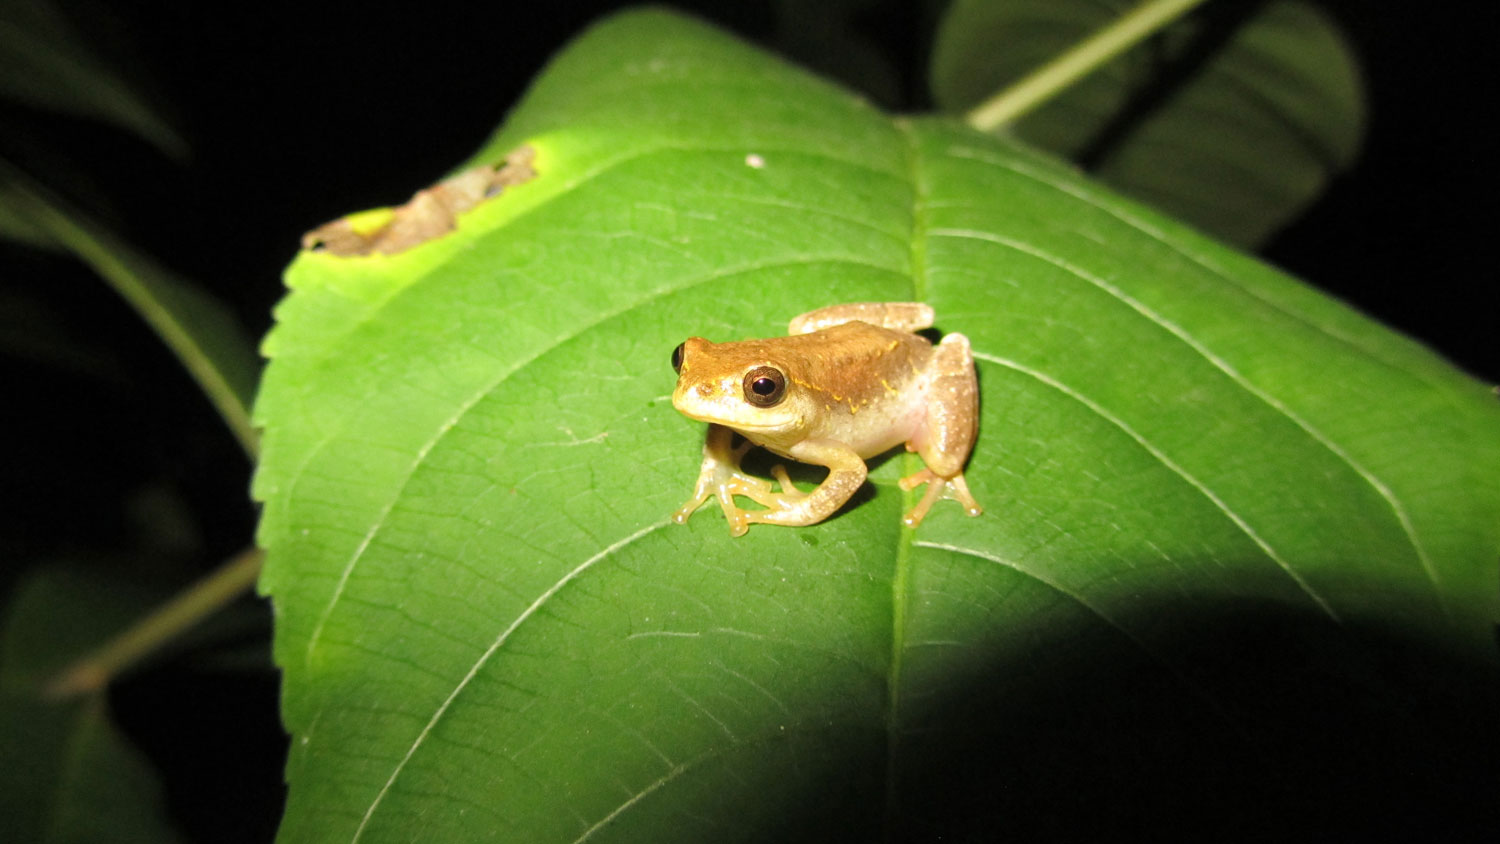 Amphibians of the Luangwa Valley